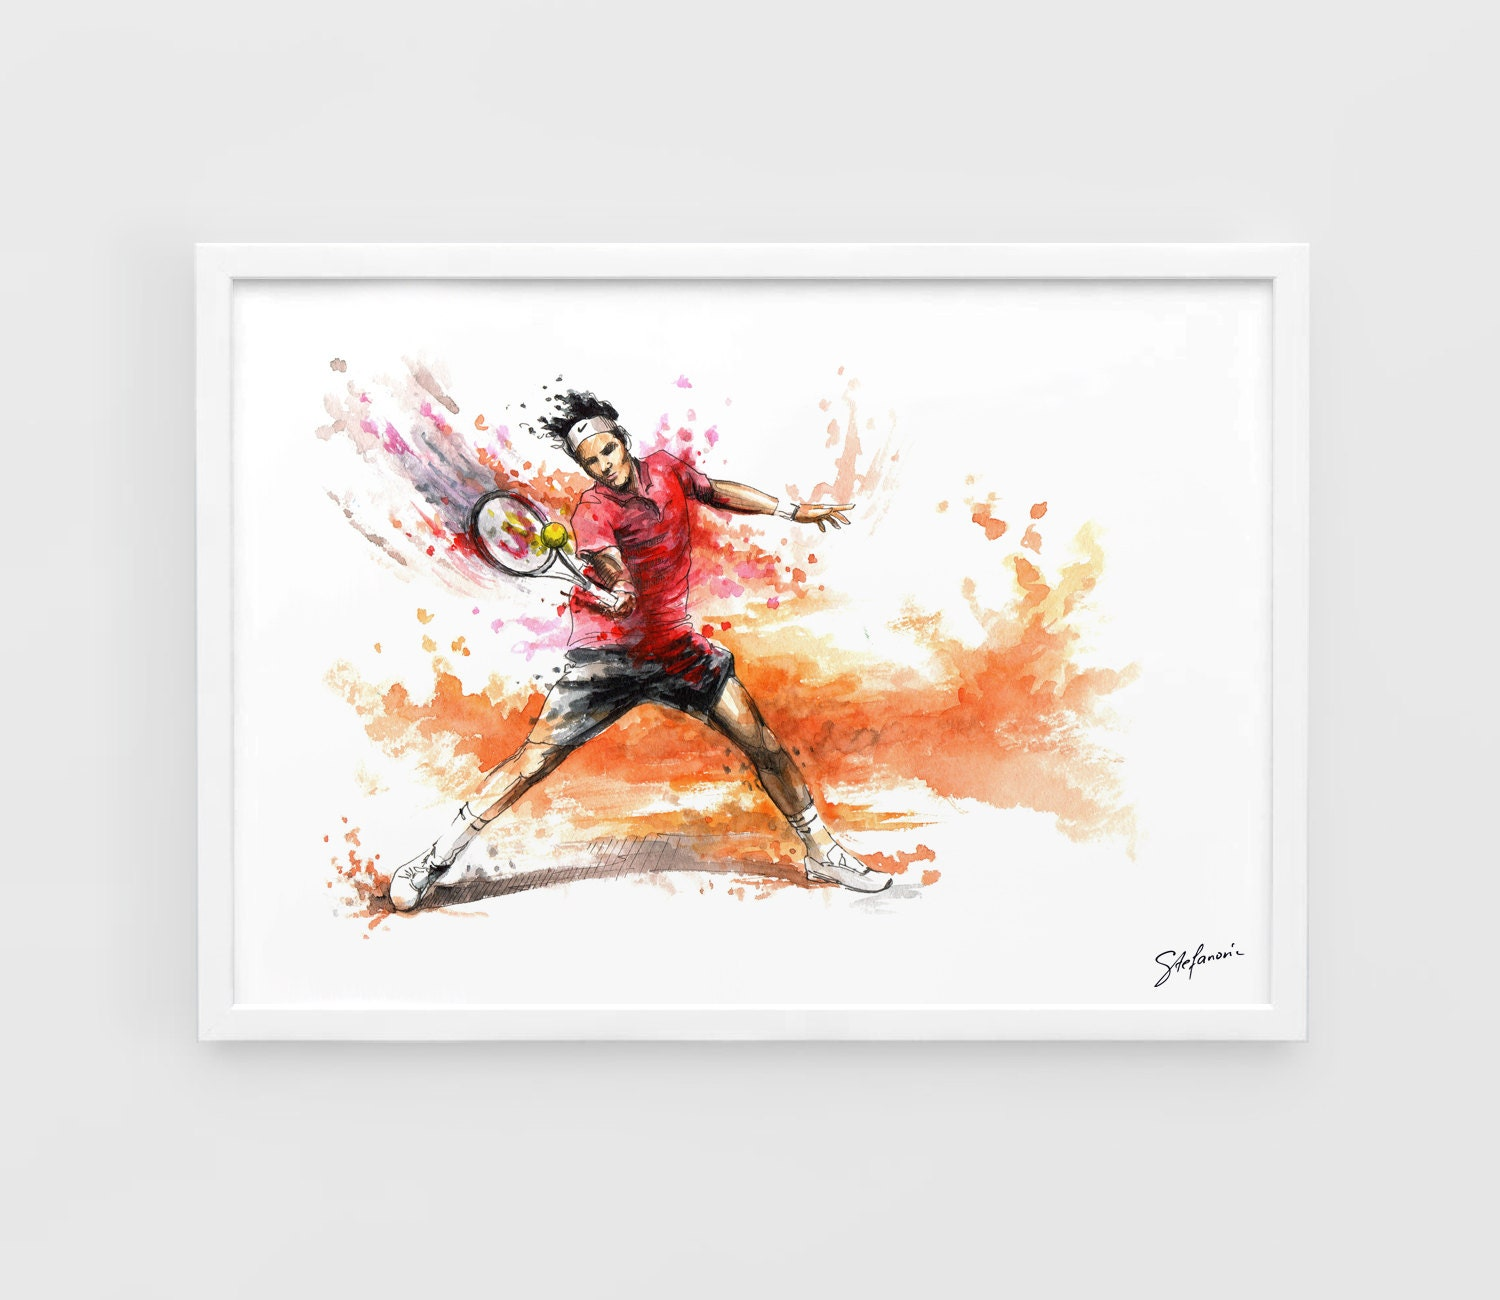 Roger federer a3 art prints of the original watercolors for Posters art prints